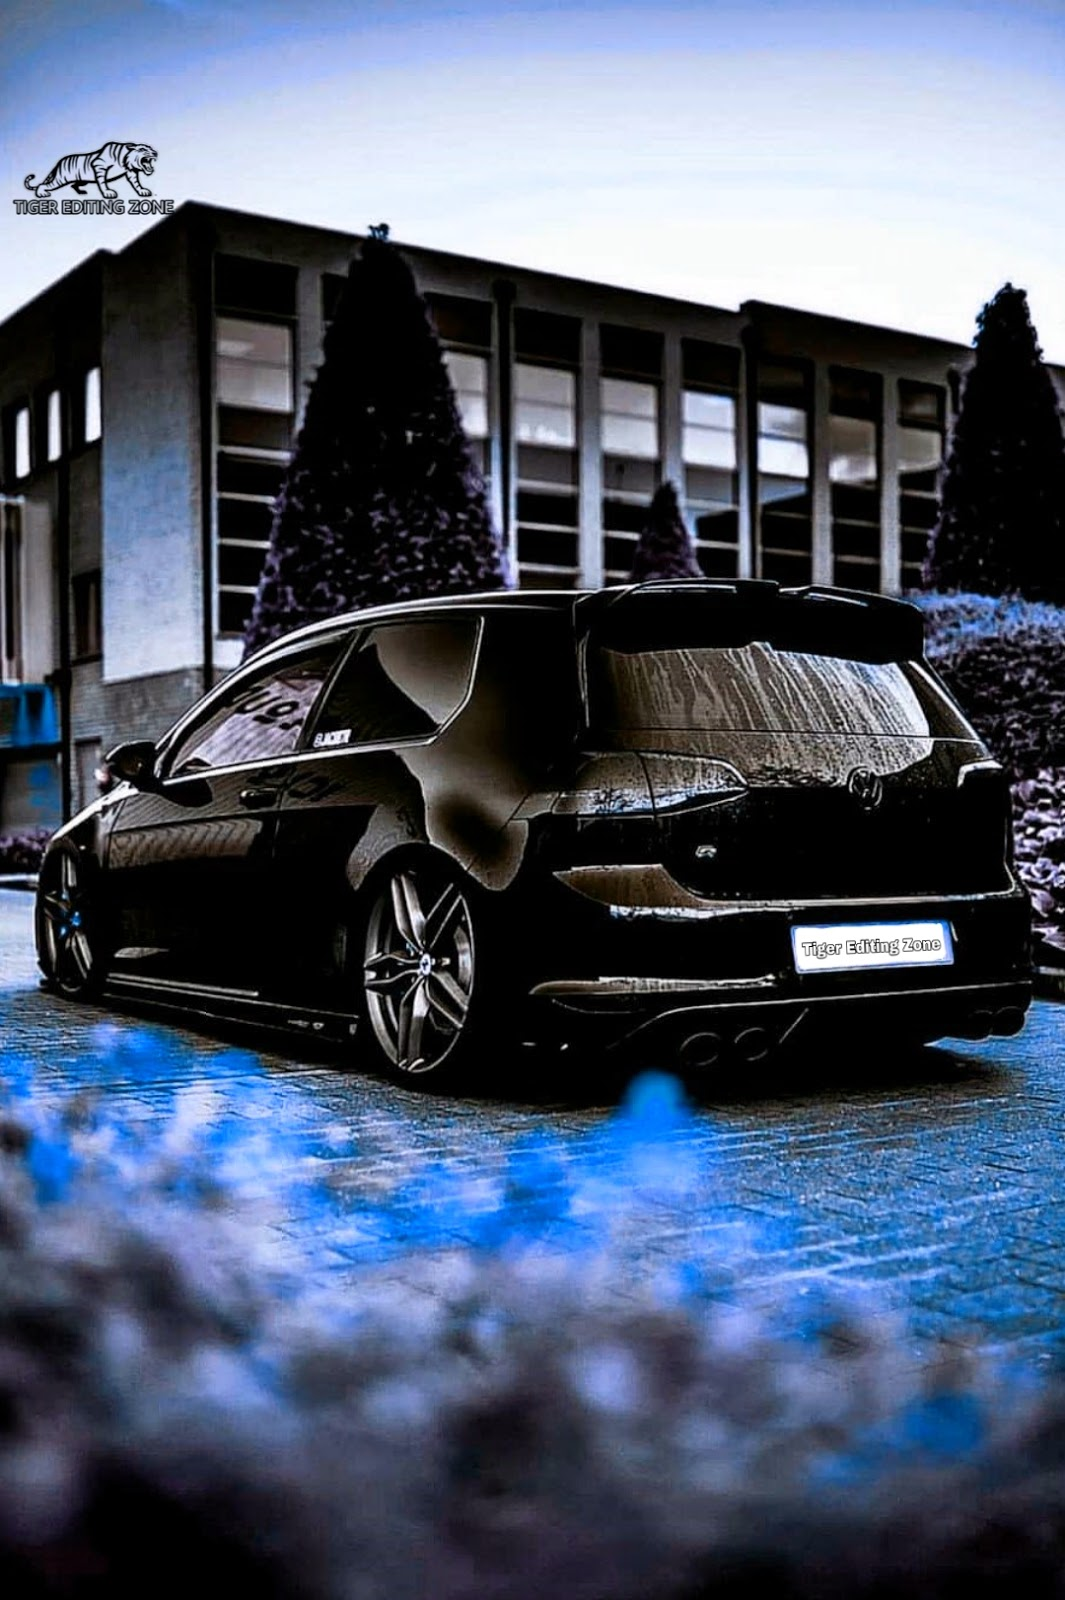 Car Background For Editing | Cb Car Background HD | Car Background HD Download